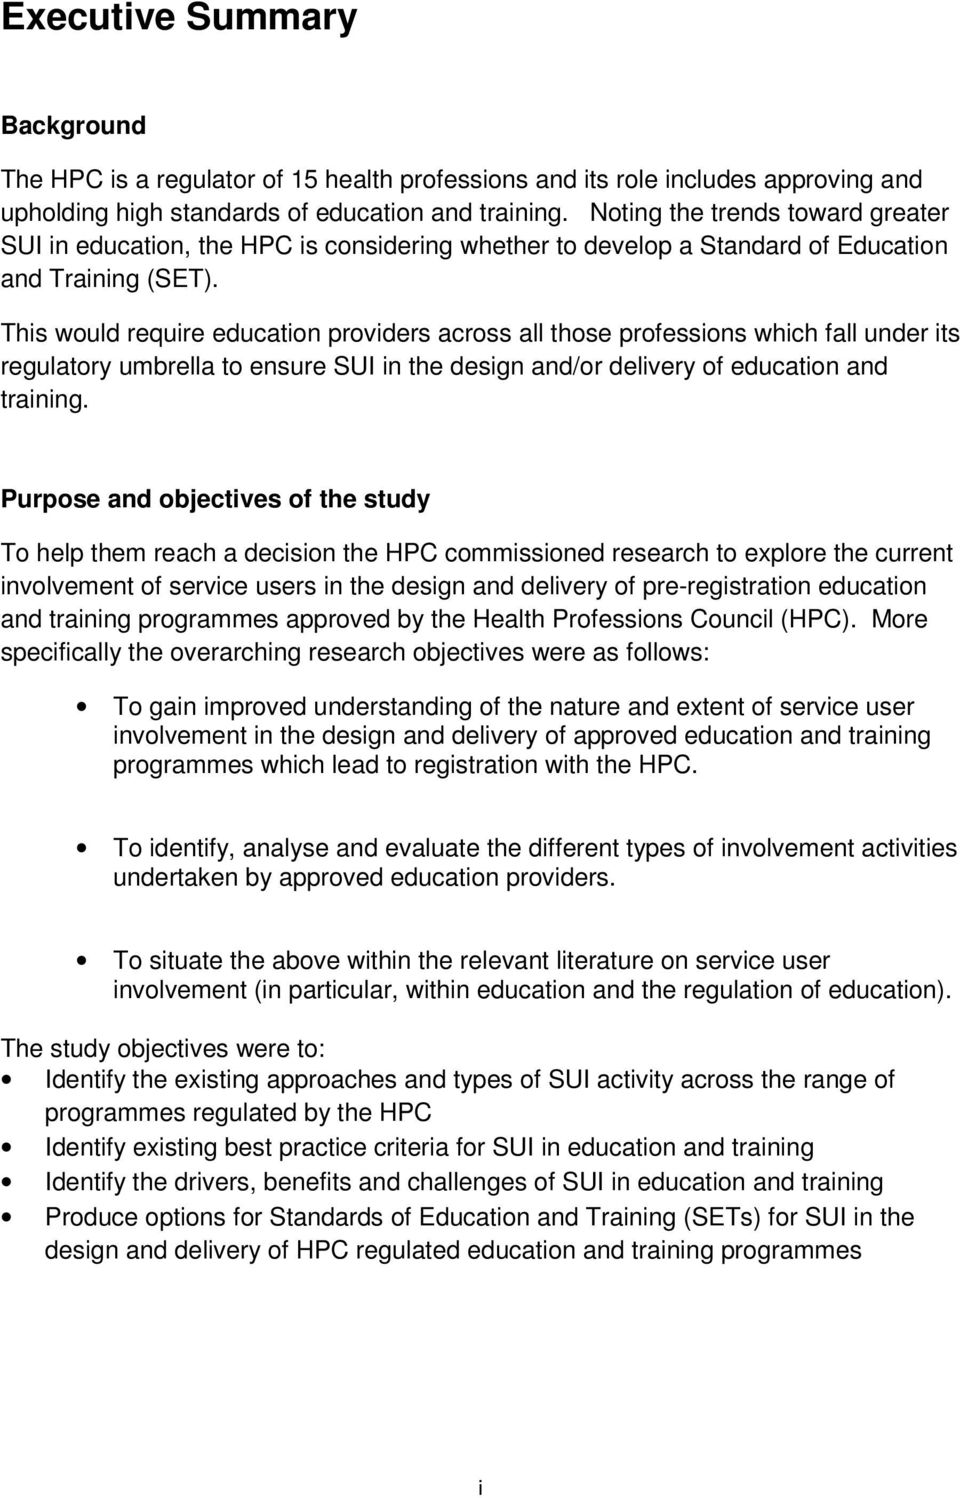 This would require education providers across all those professions which fall under its regulatory umbrella to ensure SUI in the design and/or delivery of education and training.